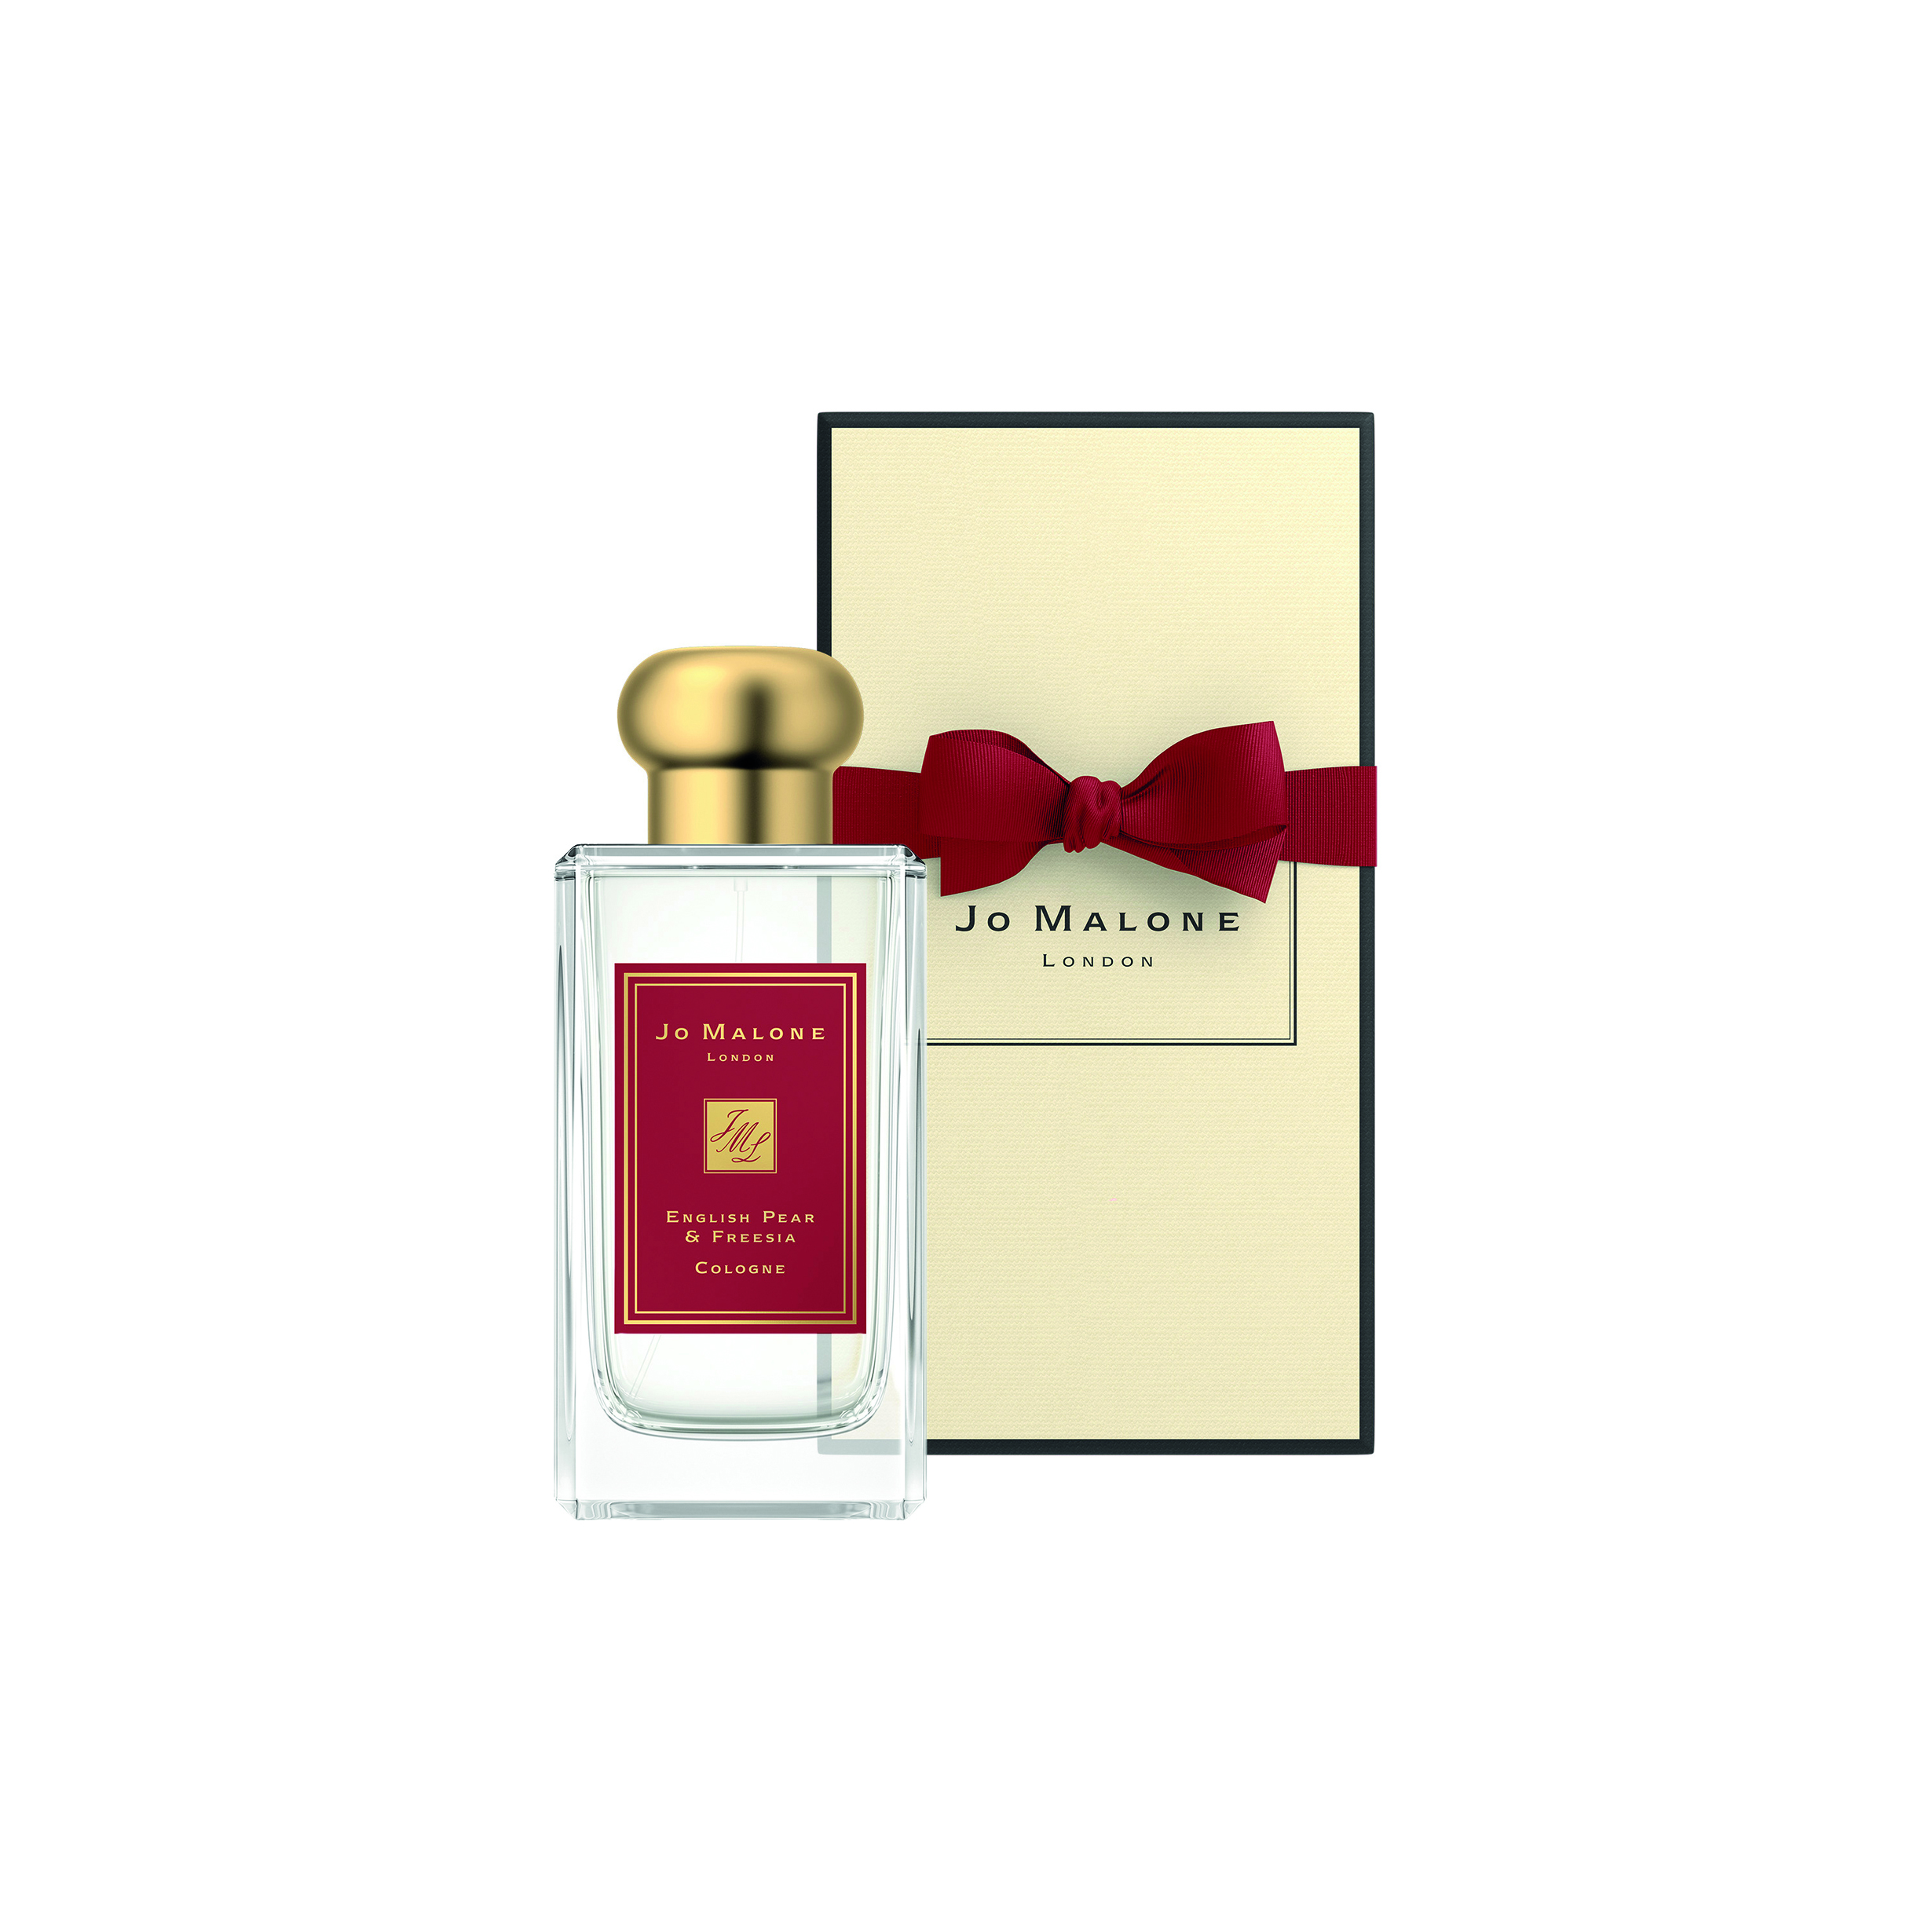 Jo Malone London - Gold Capped Perfume